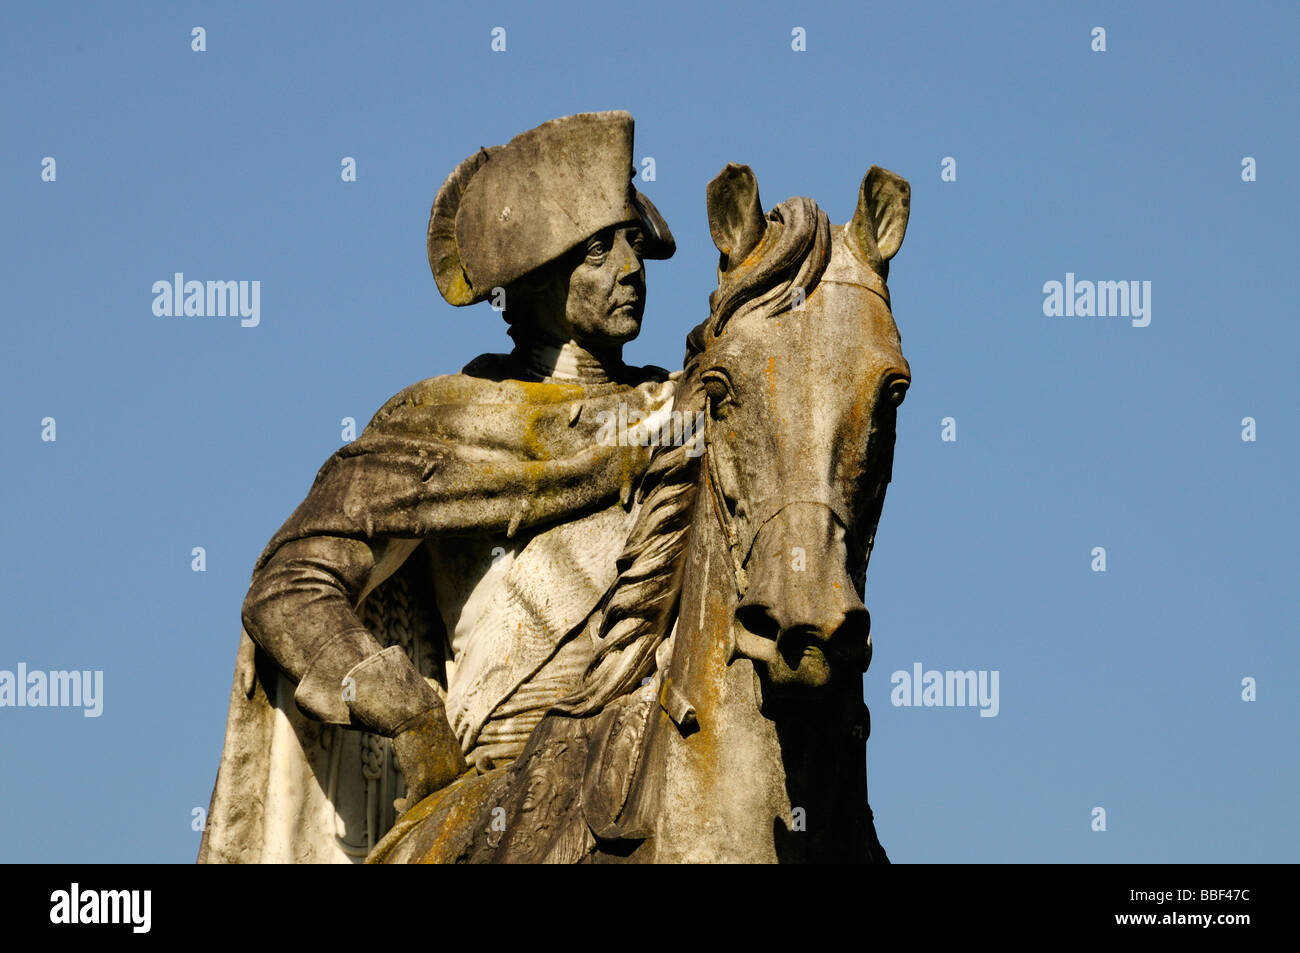 Statue of Frederick the Great, Sanssouci Park, Potsdam, Germany - Stock Image